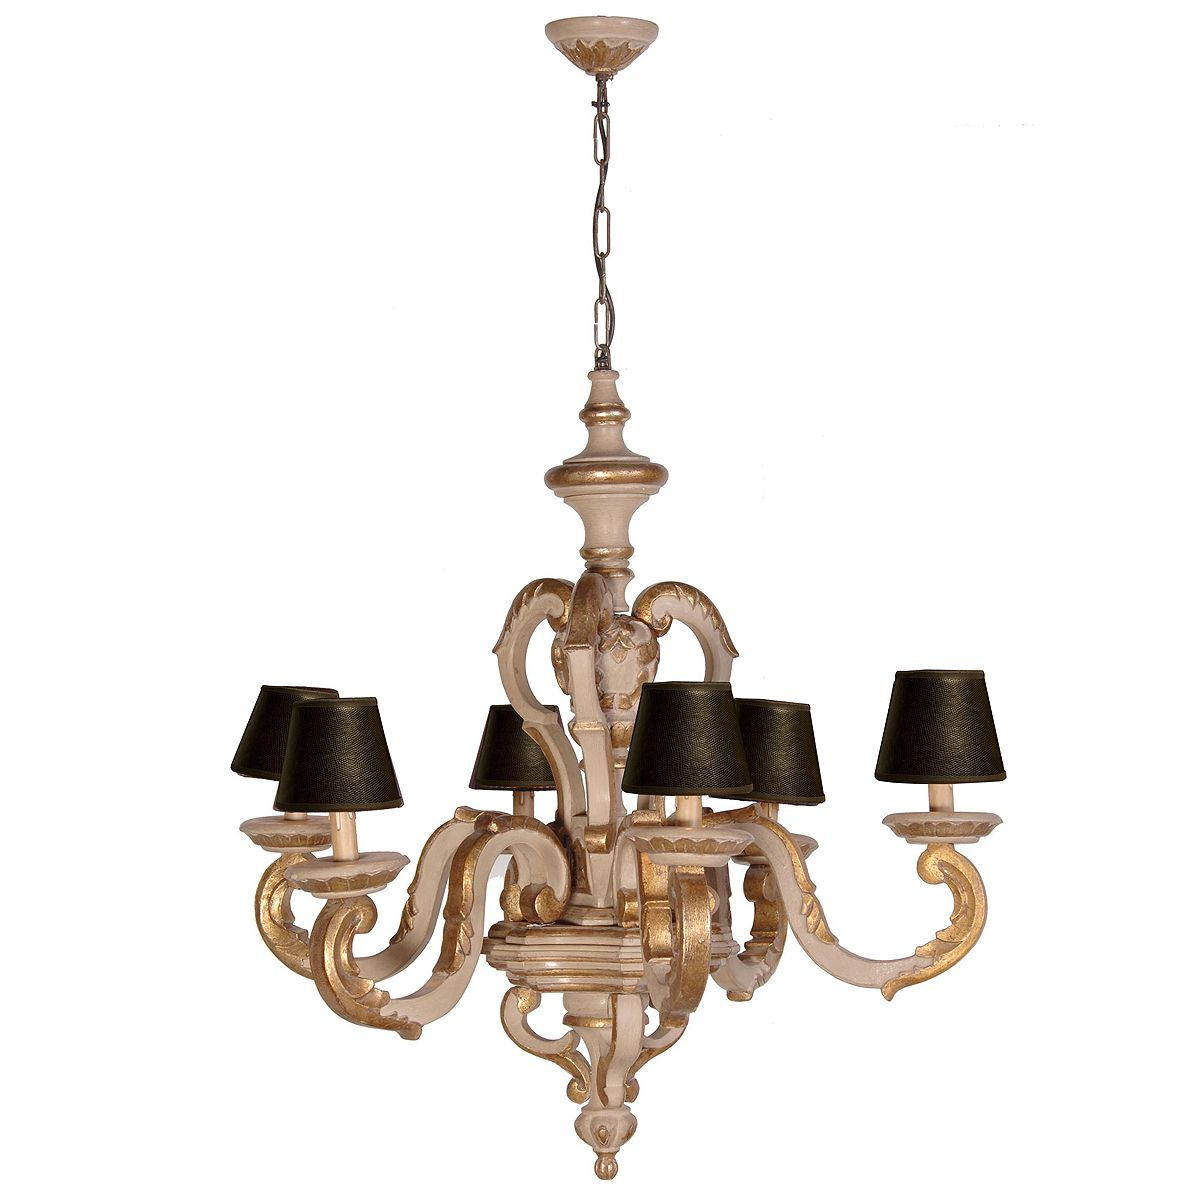 Our Award Winning Range Of Chandeliers French Lighting Is Perfect For Any Home Contact Bedroom Company More Details On Products